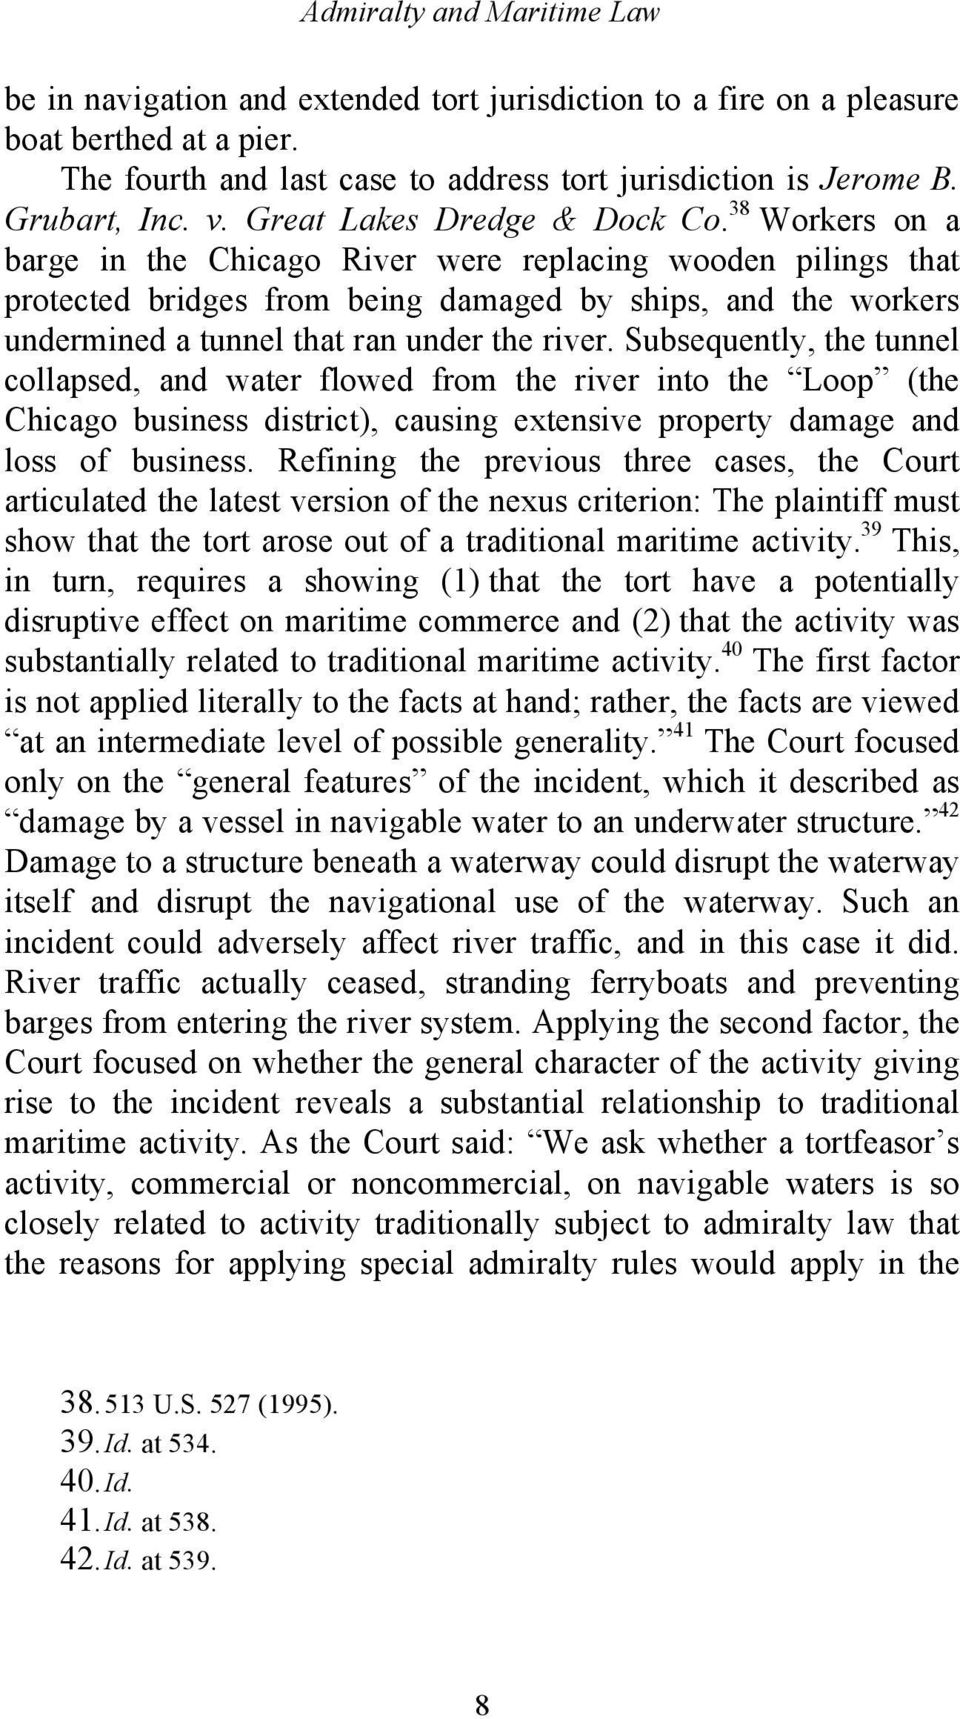 38 Workers on a barge in the Chicago River were replacing wooden pilings that protected bridges from being damaged by ships, and the workers undermined a tunnel that ran under the river.